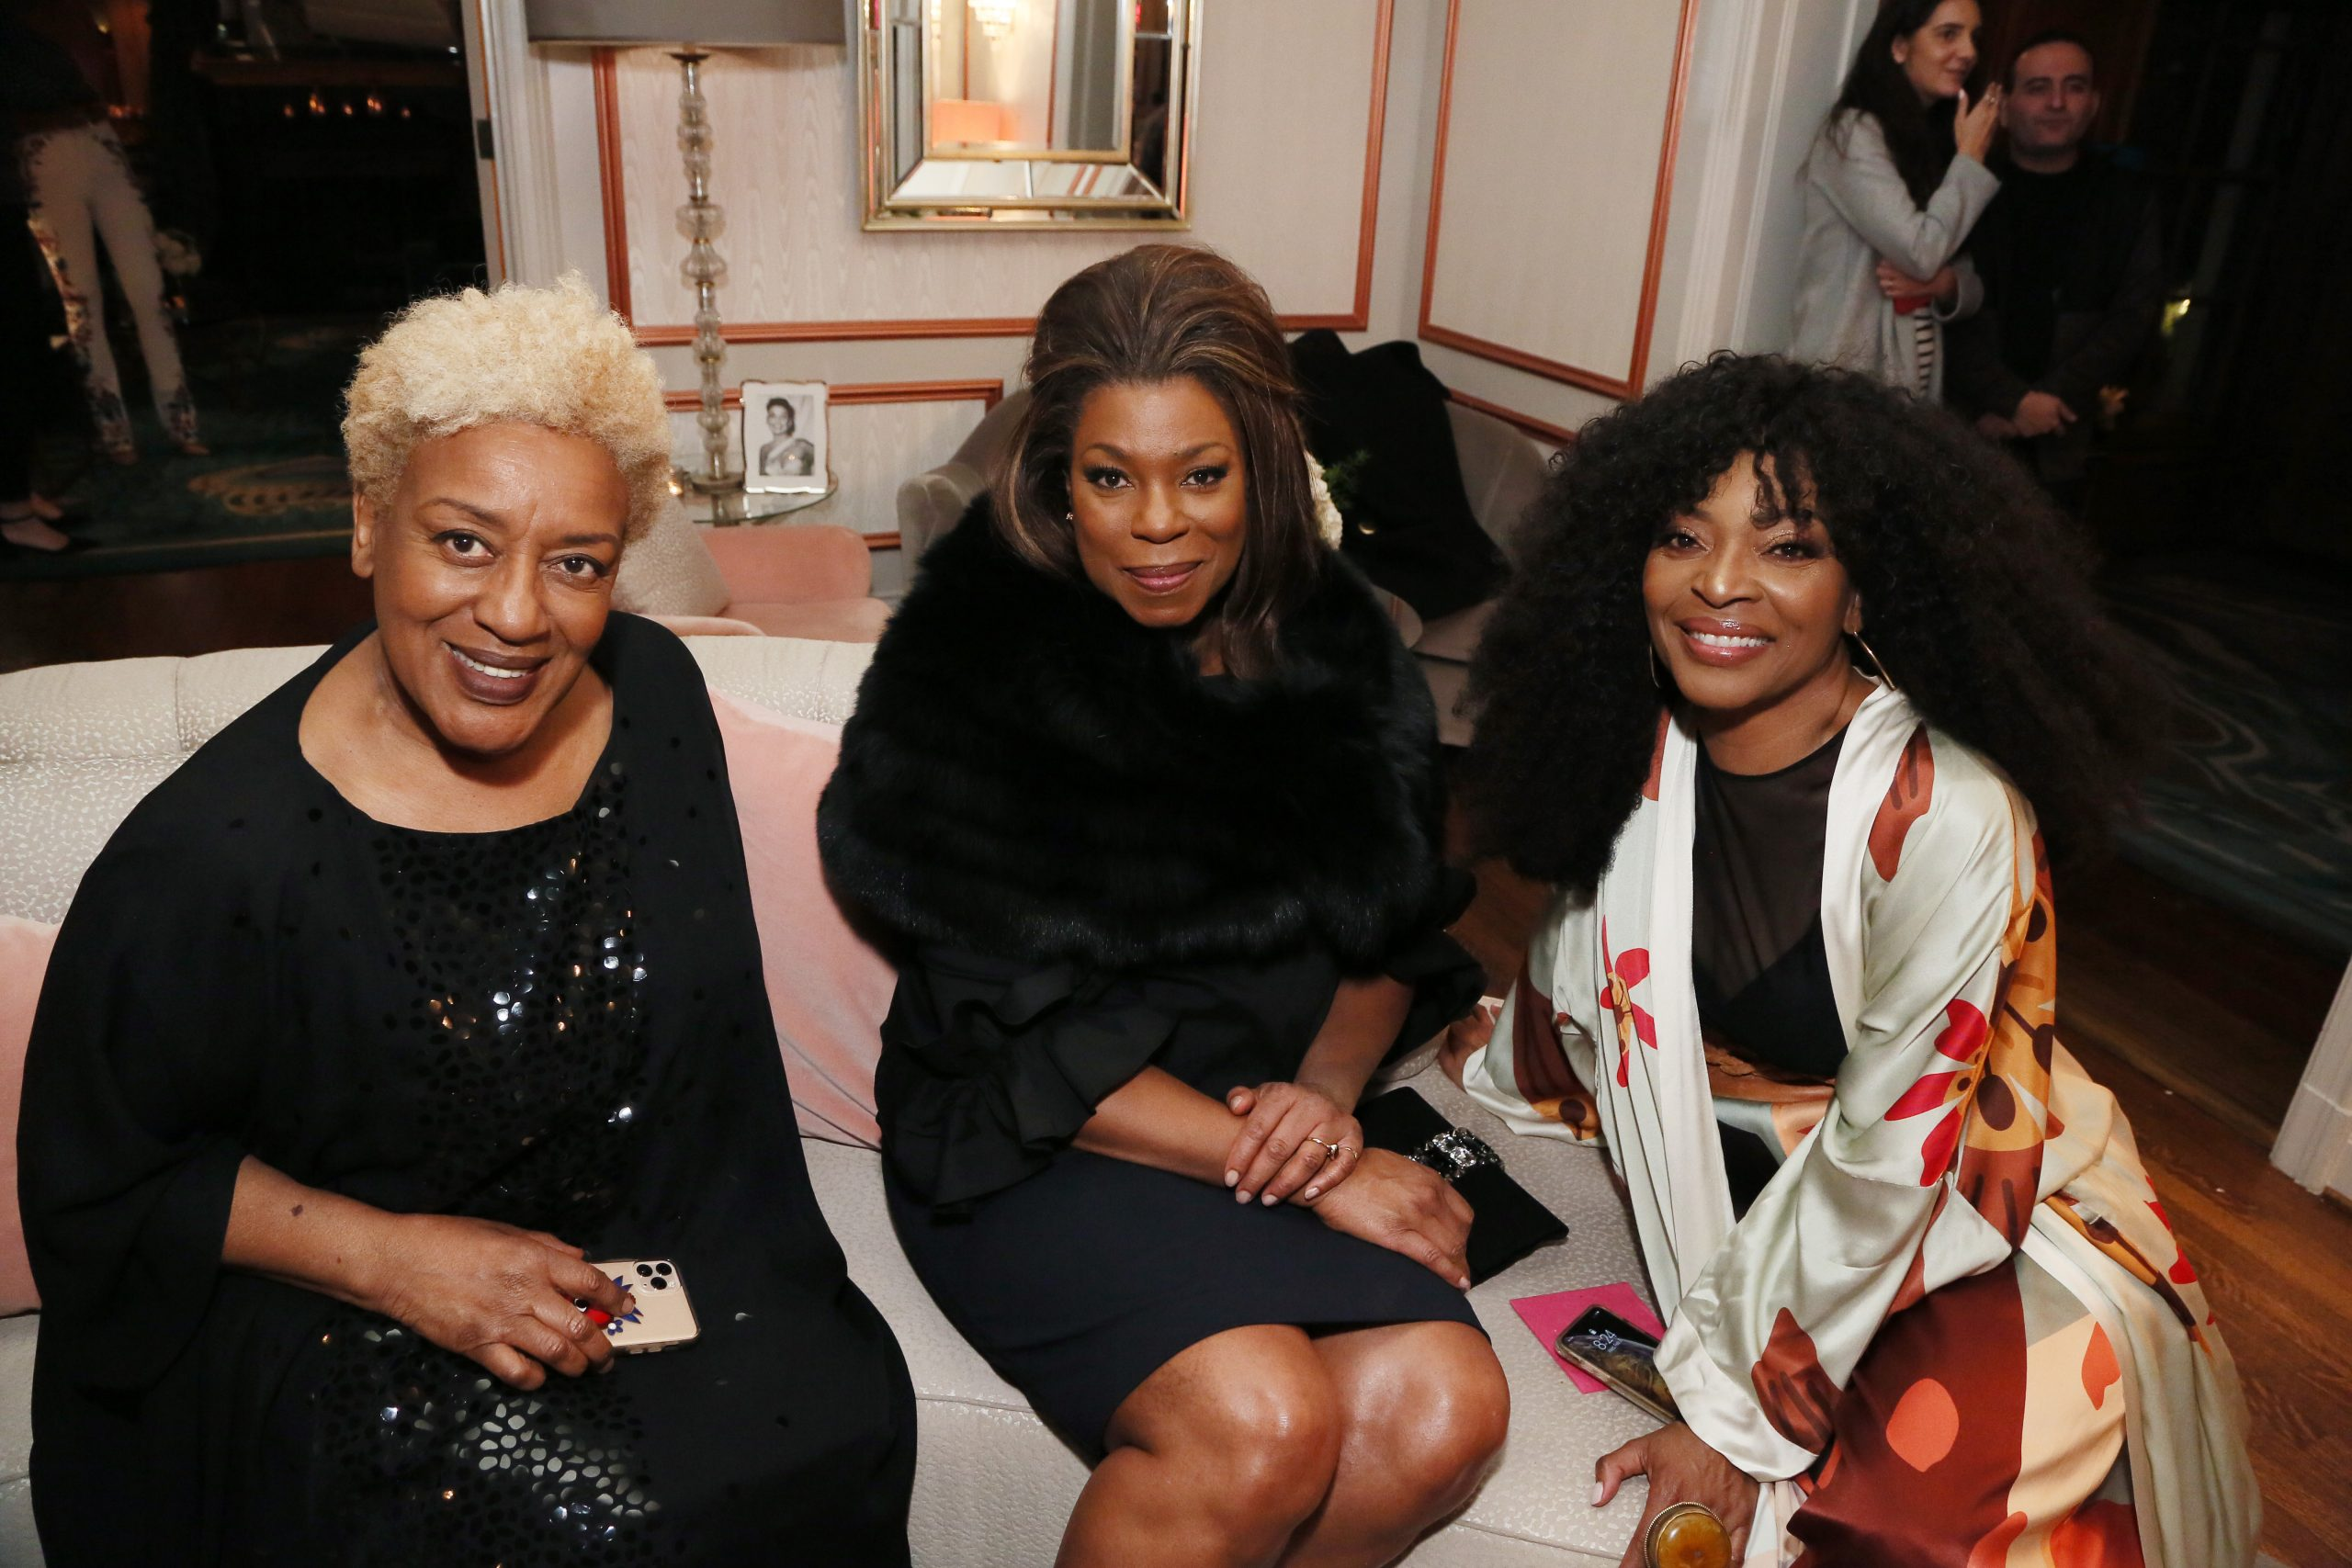 Alfre Woodard's 11th Annual Sistahs' Soirée at The Private Residence of Jonas Tahlin, CEO of Absolut Elyx